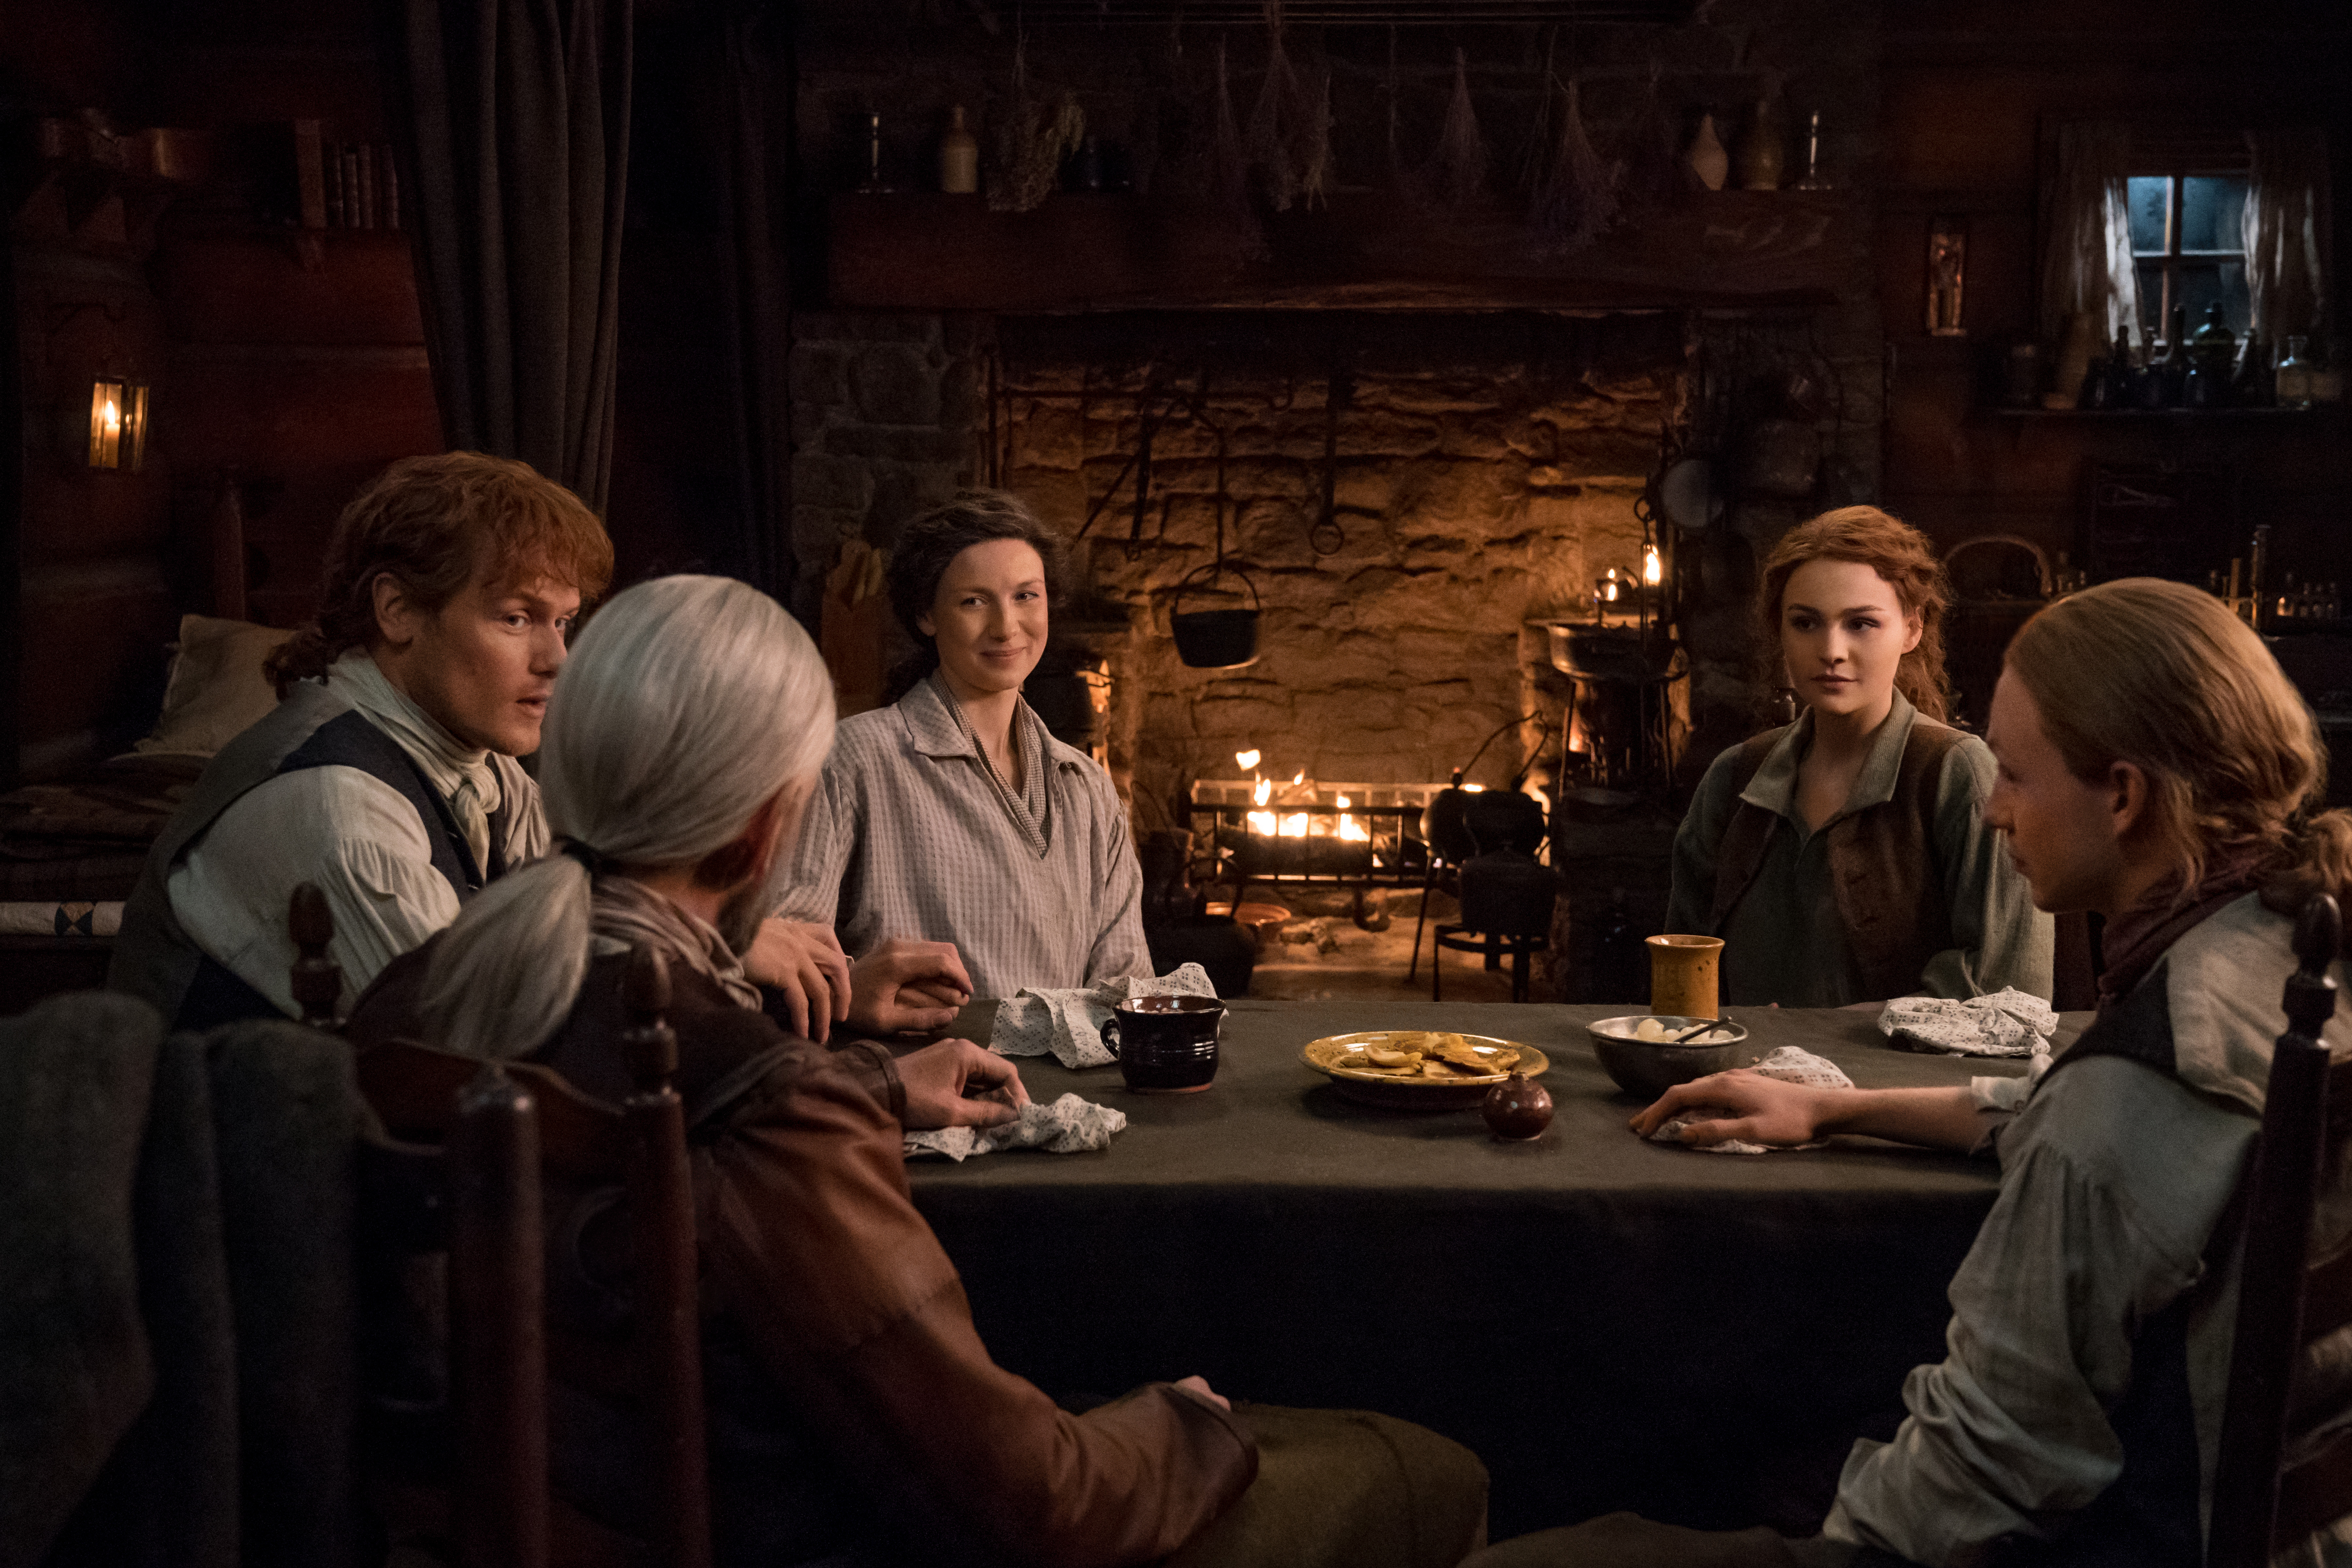 Outlander Season 4 Overall Ratings What Do They Mean Do They Matter